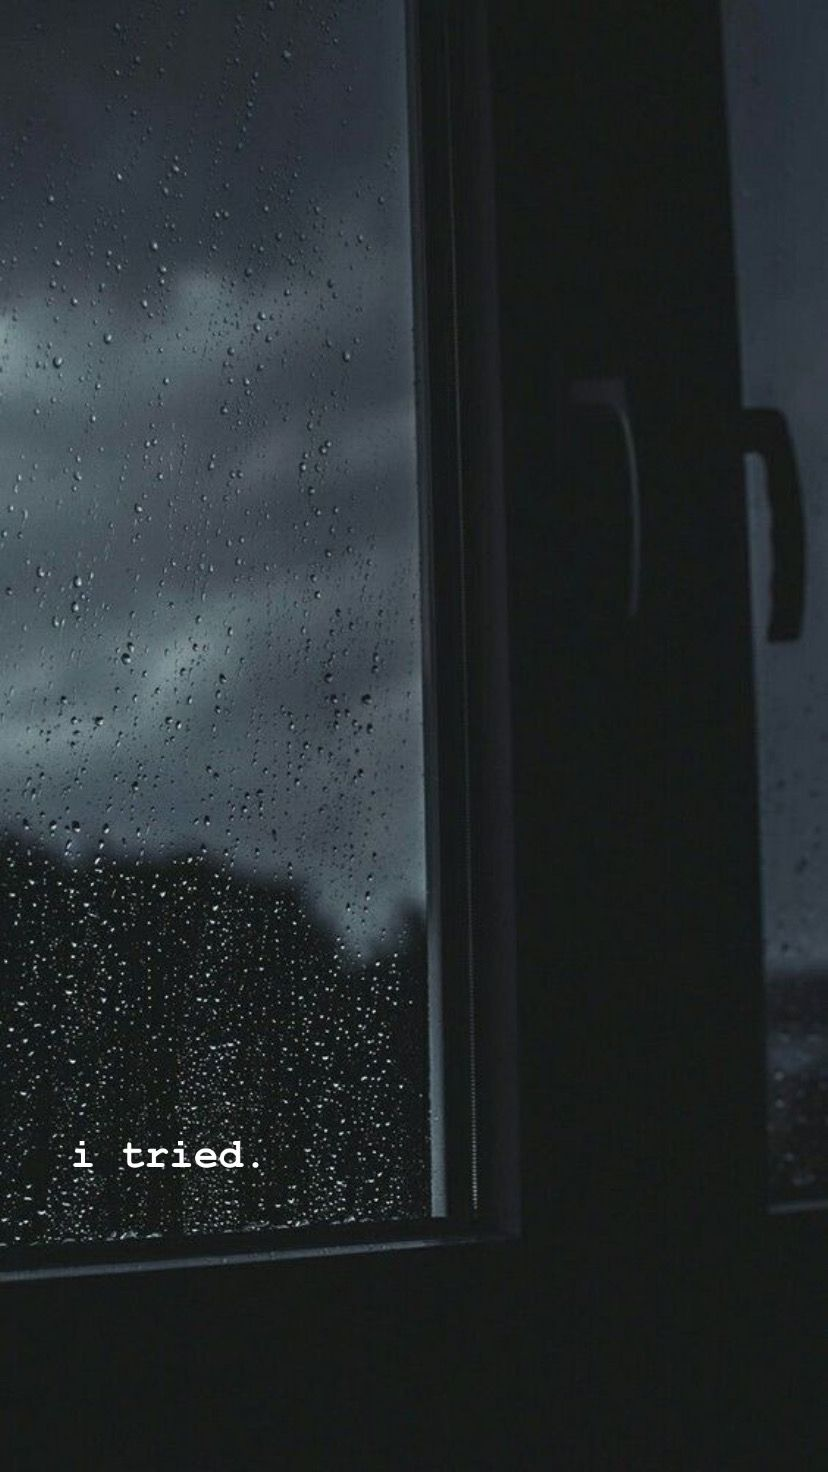 aesthetic rain wallpaper Unique iphone wallpaper Rain